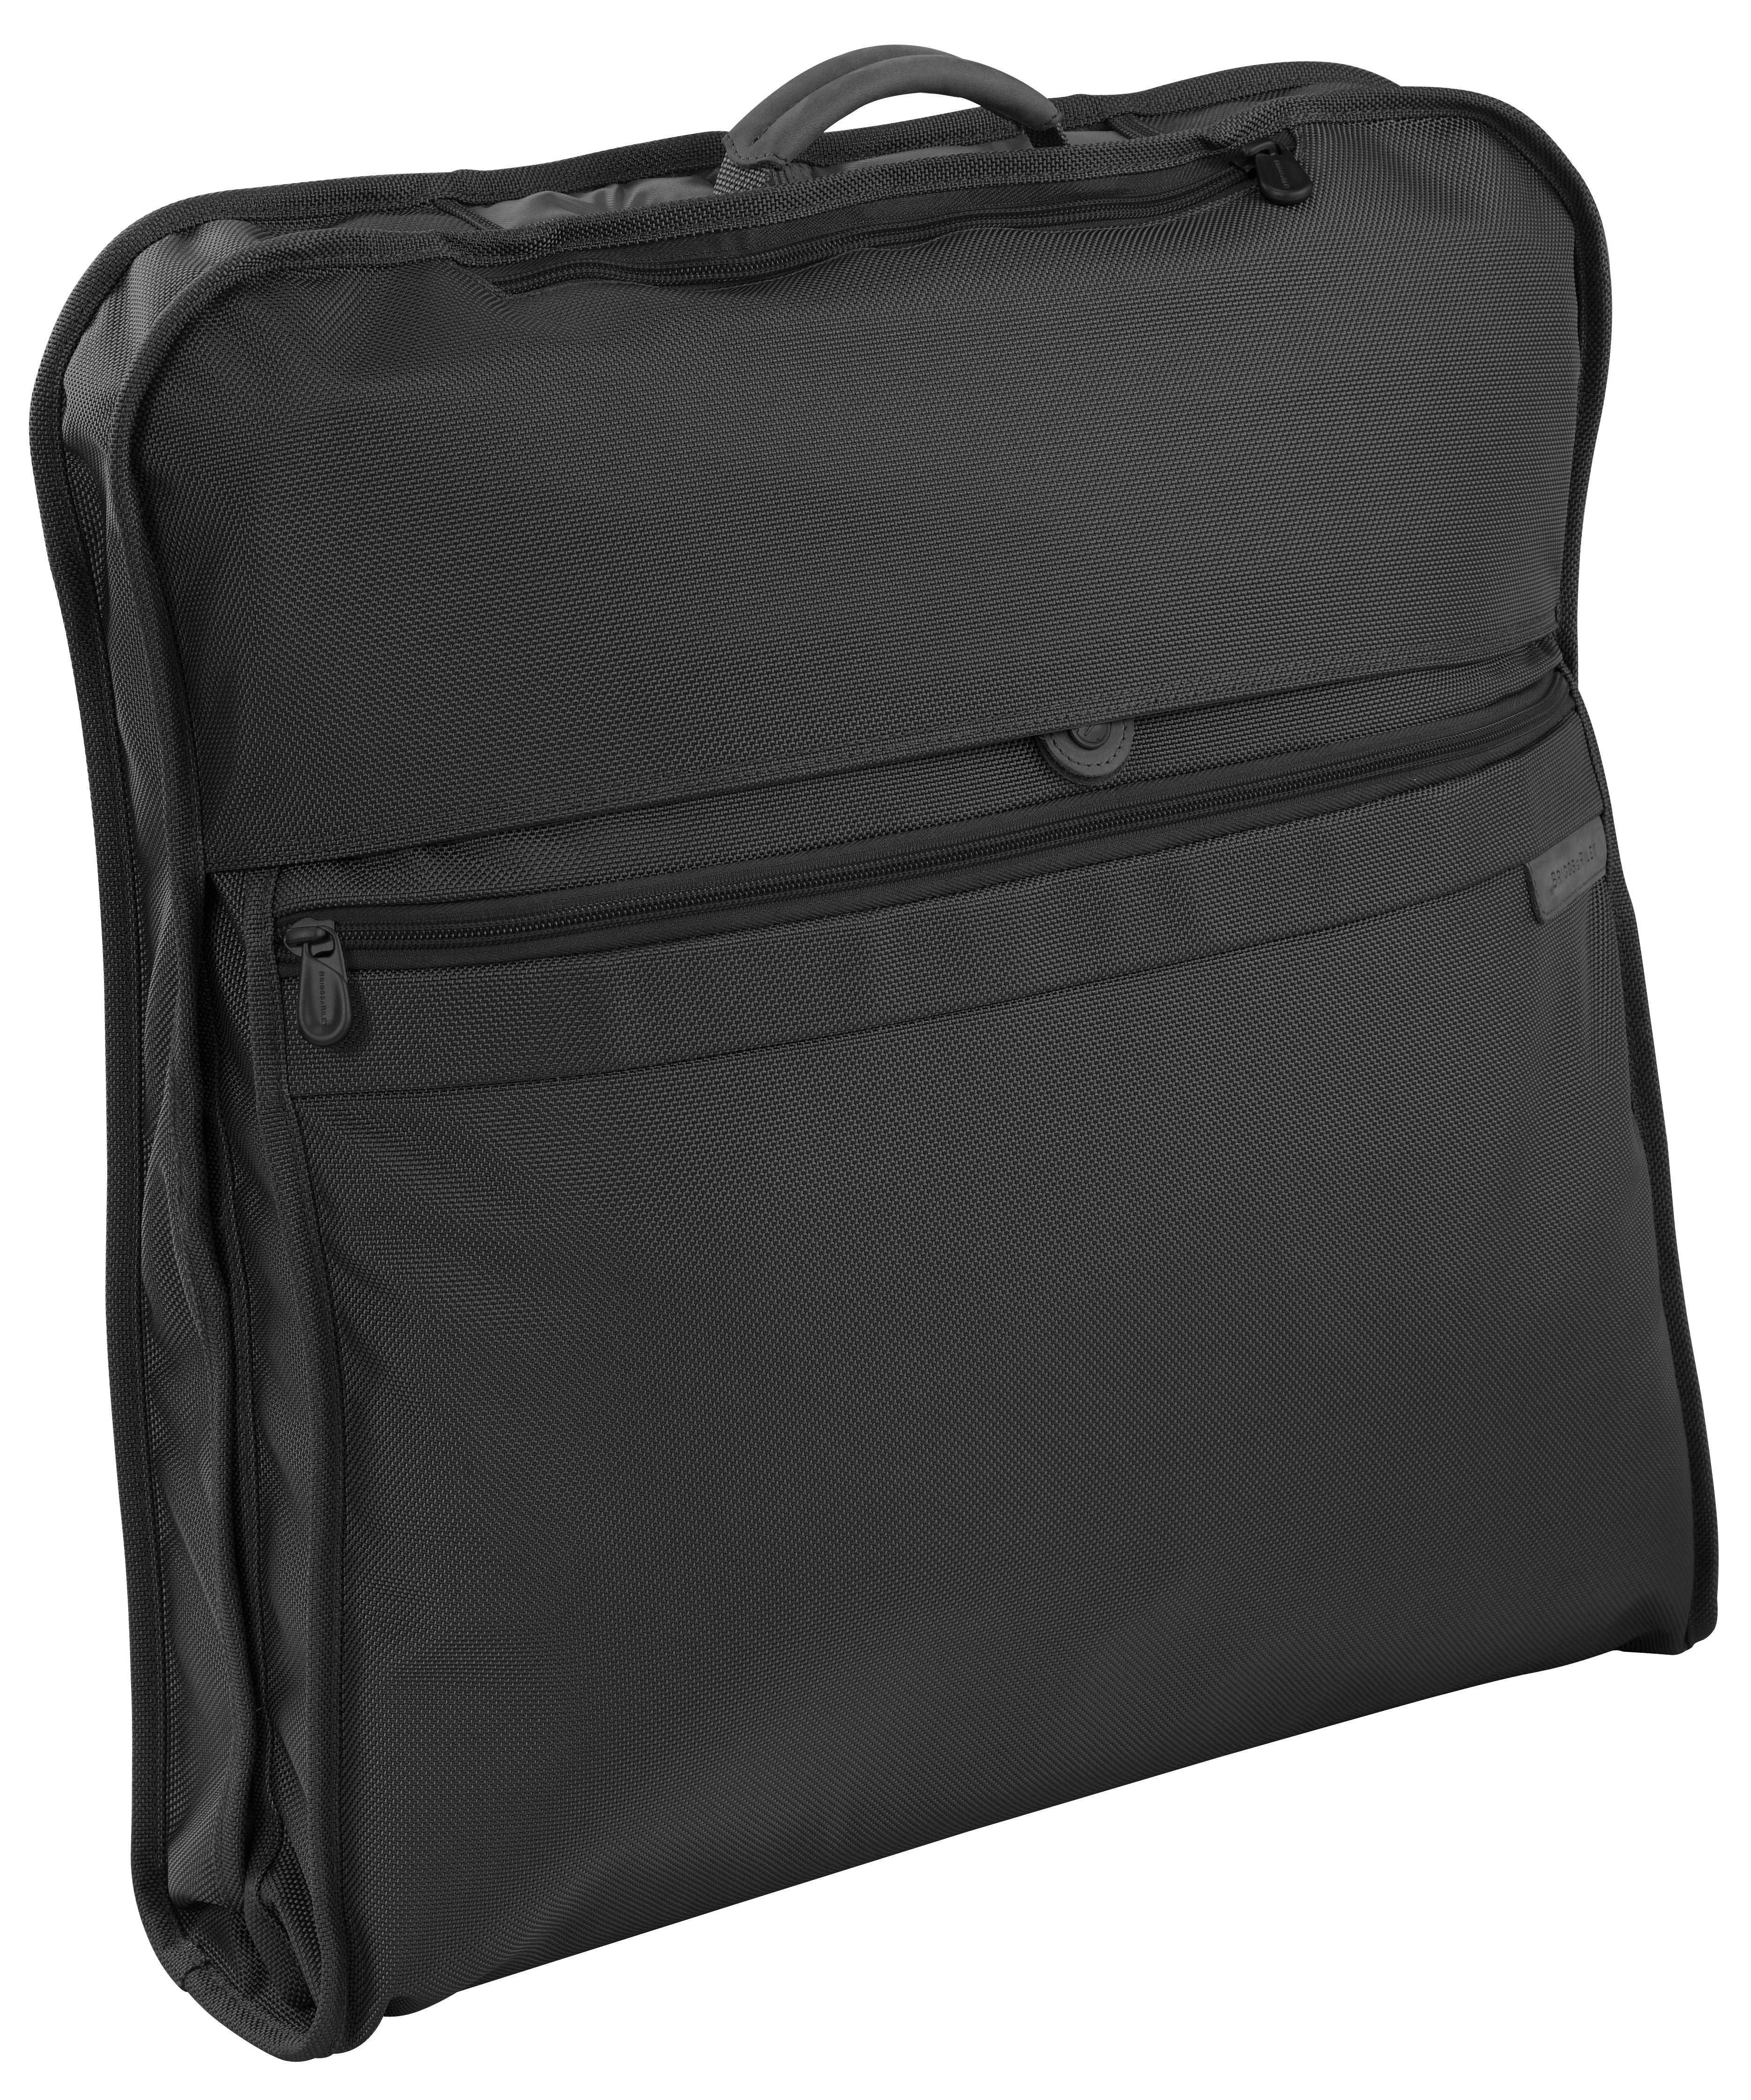 "Briggs & Riley Baseline 22"" Classic Garment Cover - Black 